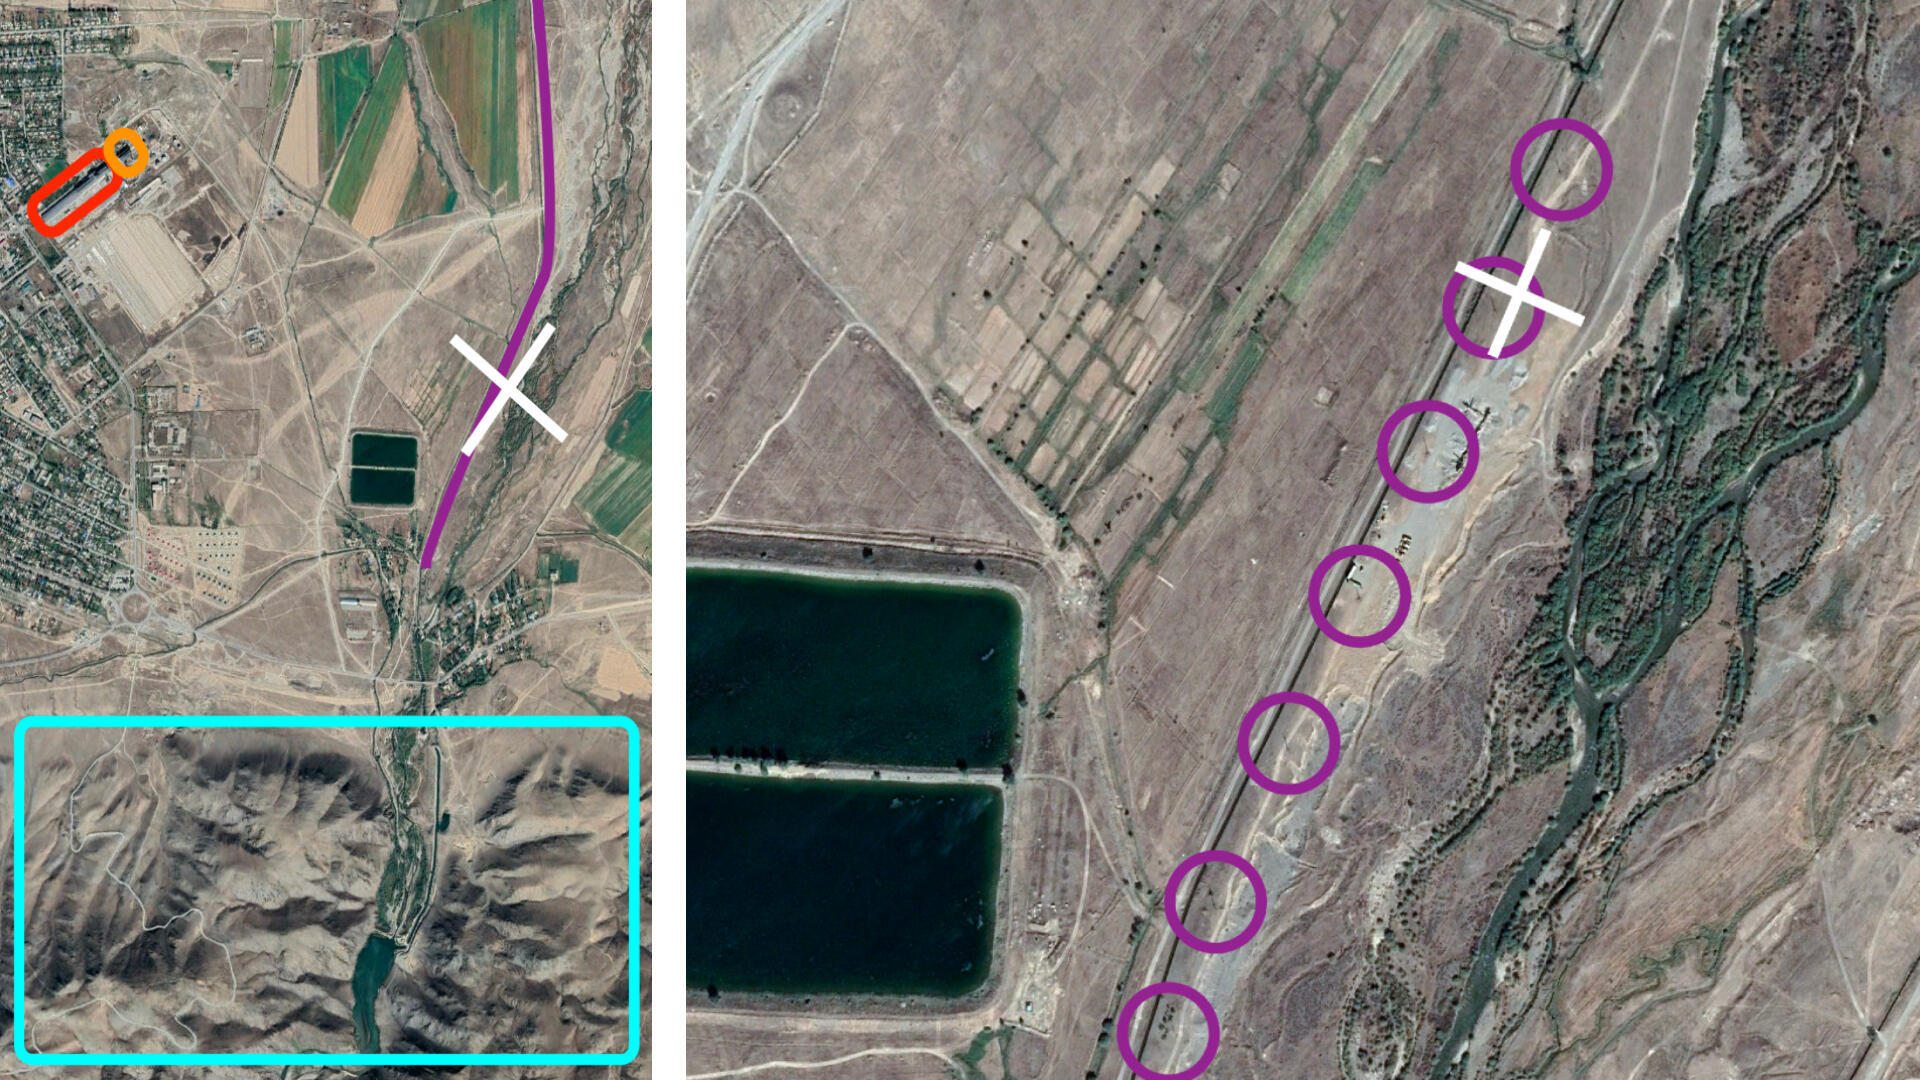 Satellite imagery of Zhansugirov, wide angle (left) and close up (right)